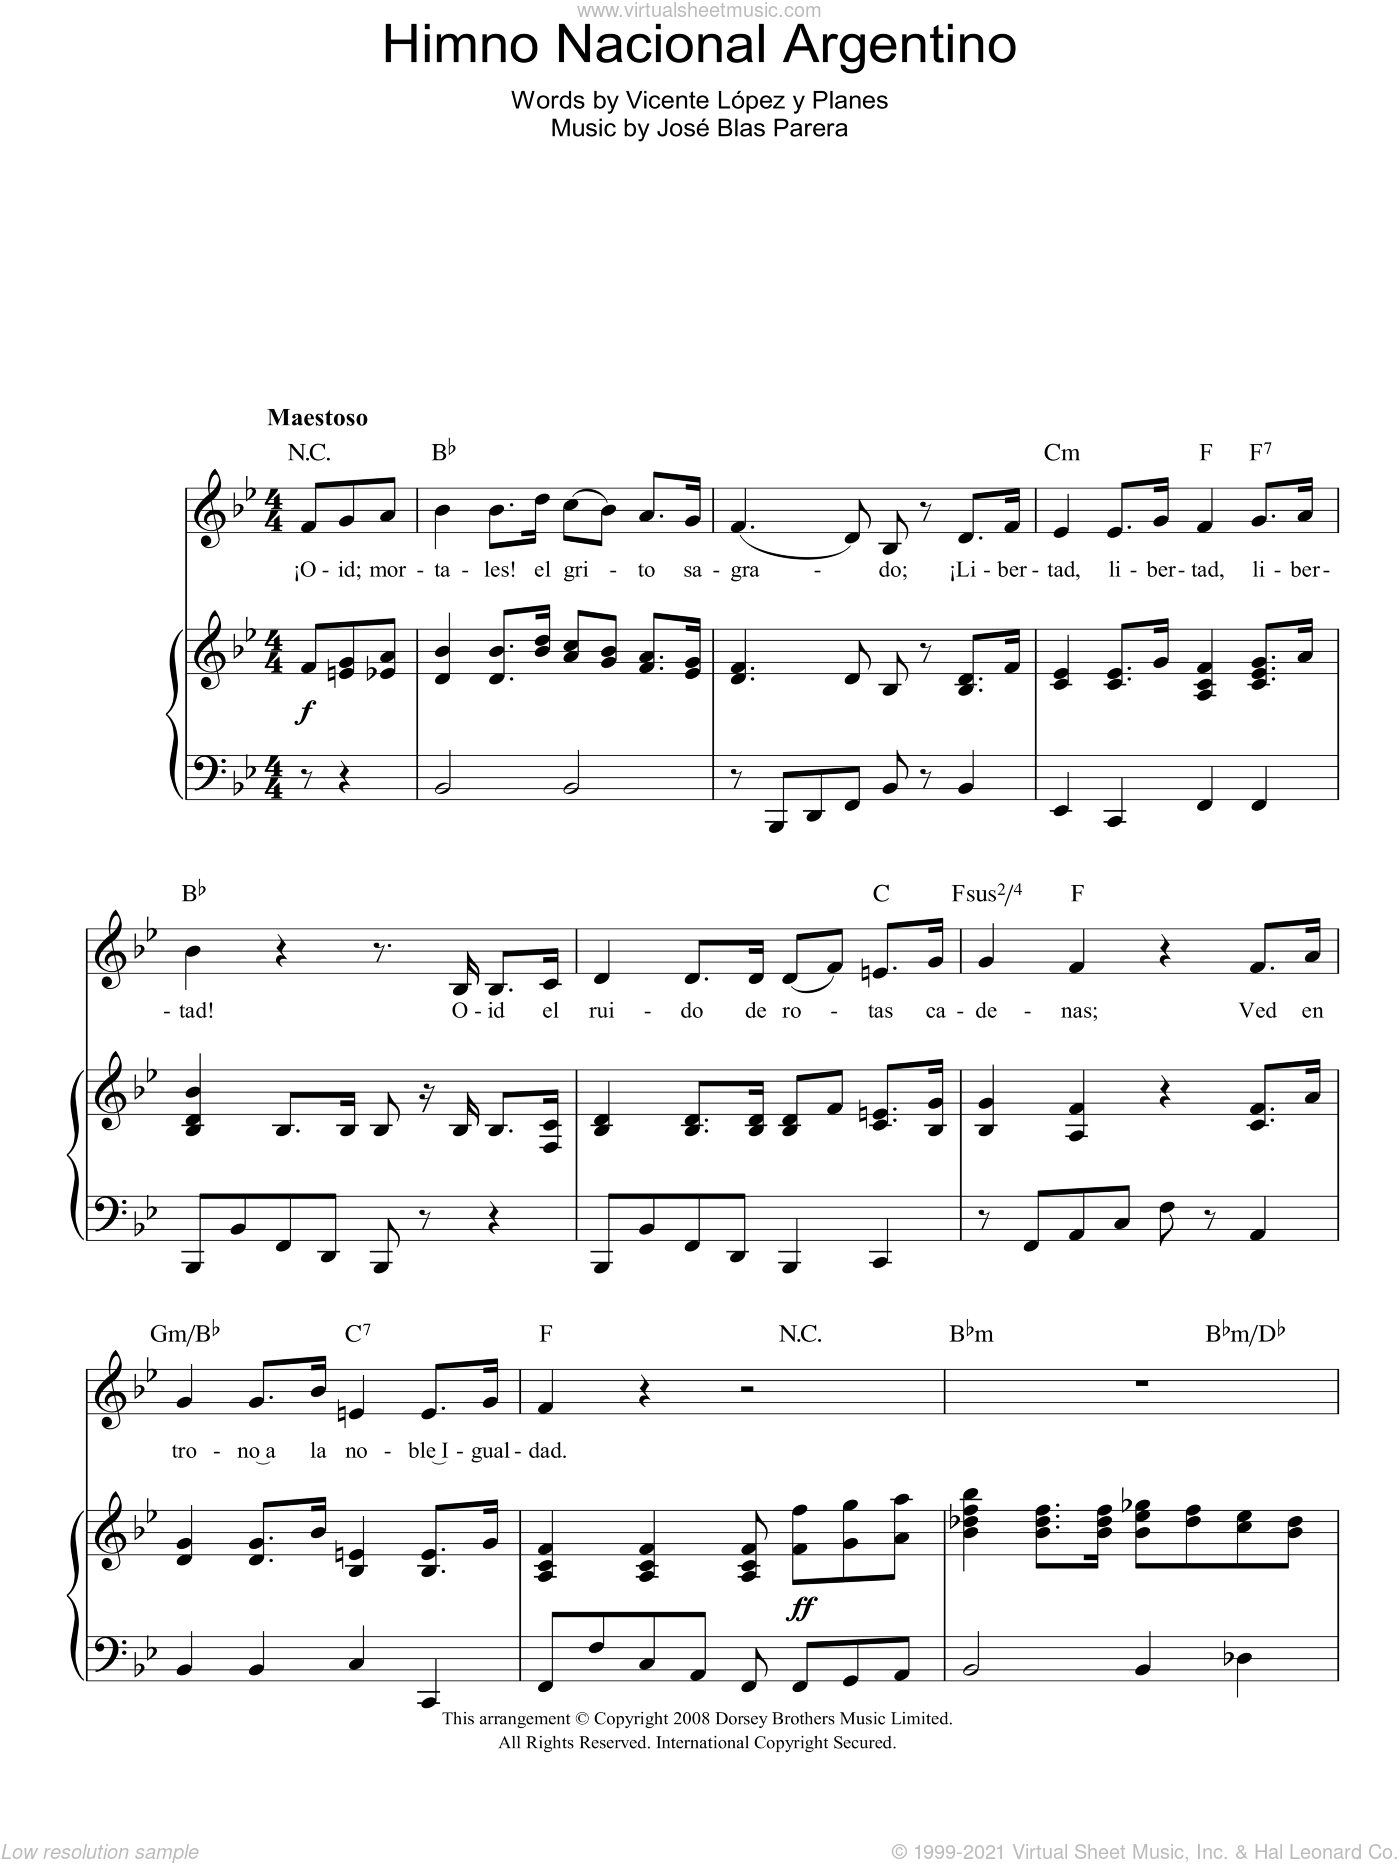 Himno Nacional Argentino (Argentinian National Anthem) sheet music for voice, piano or guitar by Jose Blas Parera and Vicente Lopez y Planes, intermediate skill level